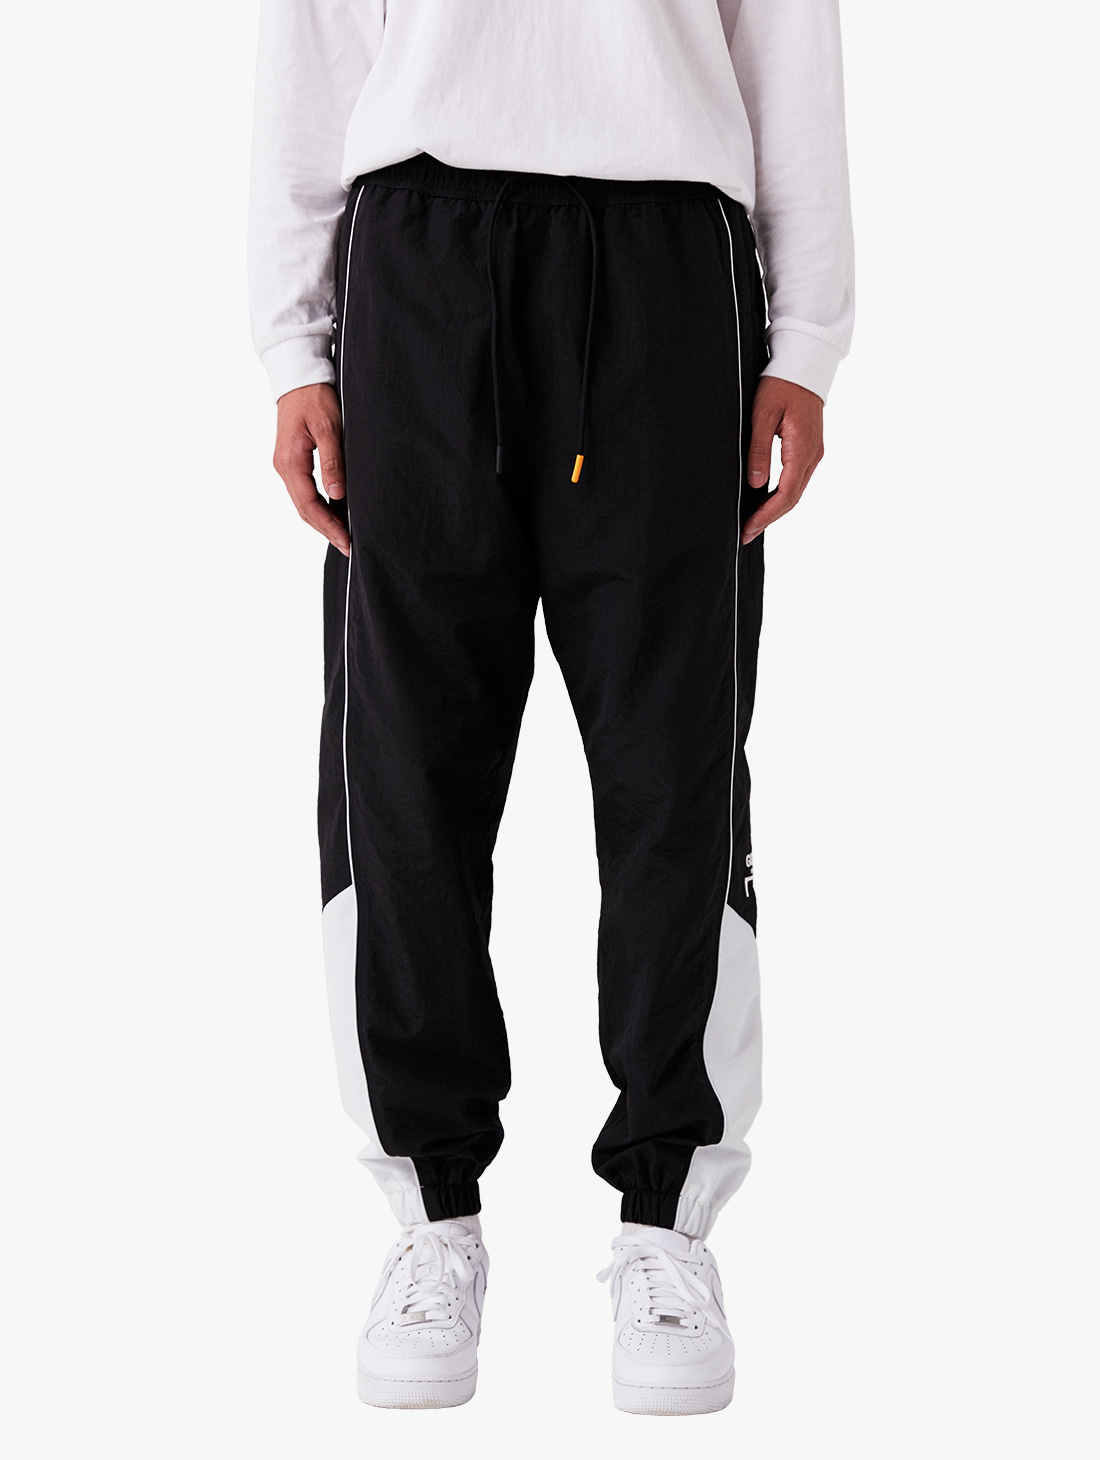 GOALSTUDIO (Sold Out) WWFC TRACK PANTS (2 Colors)